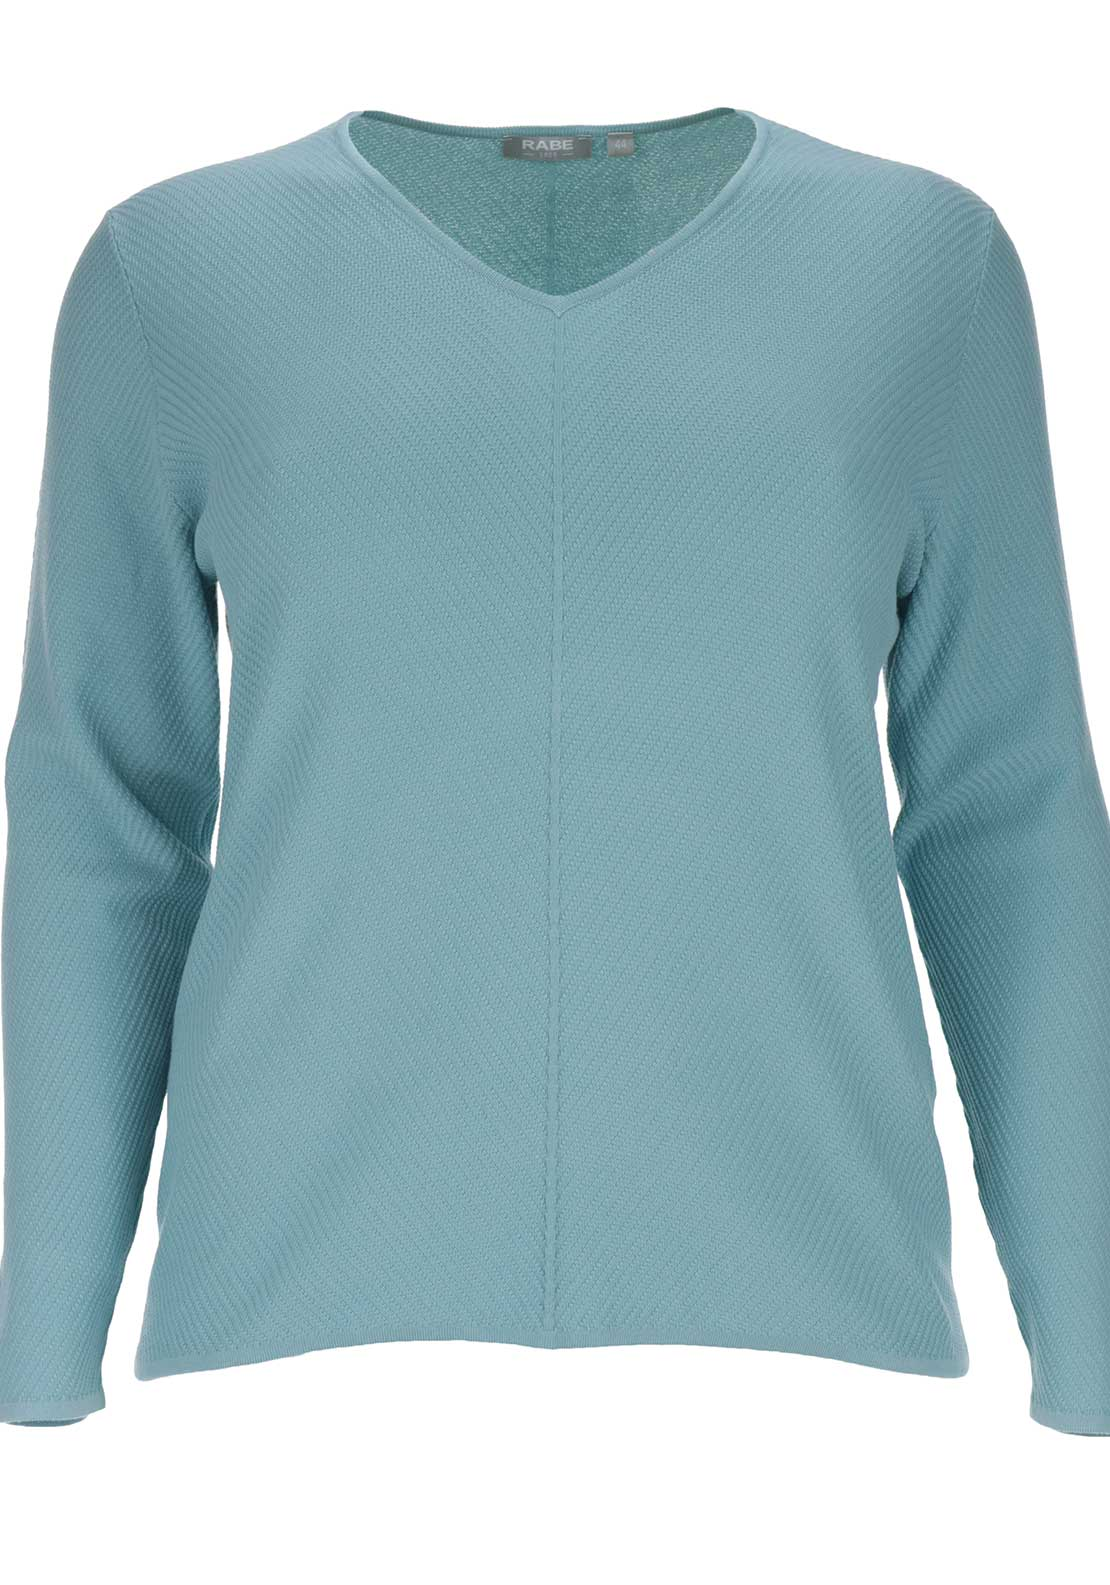 Rabe Textured V-Neck Sweater Jumper, Mint Green